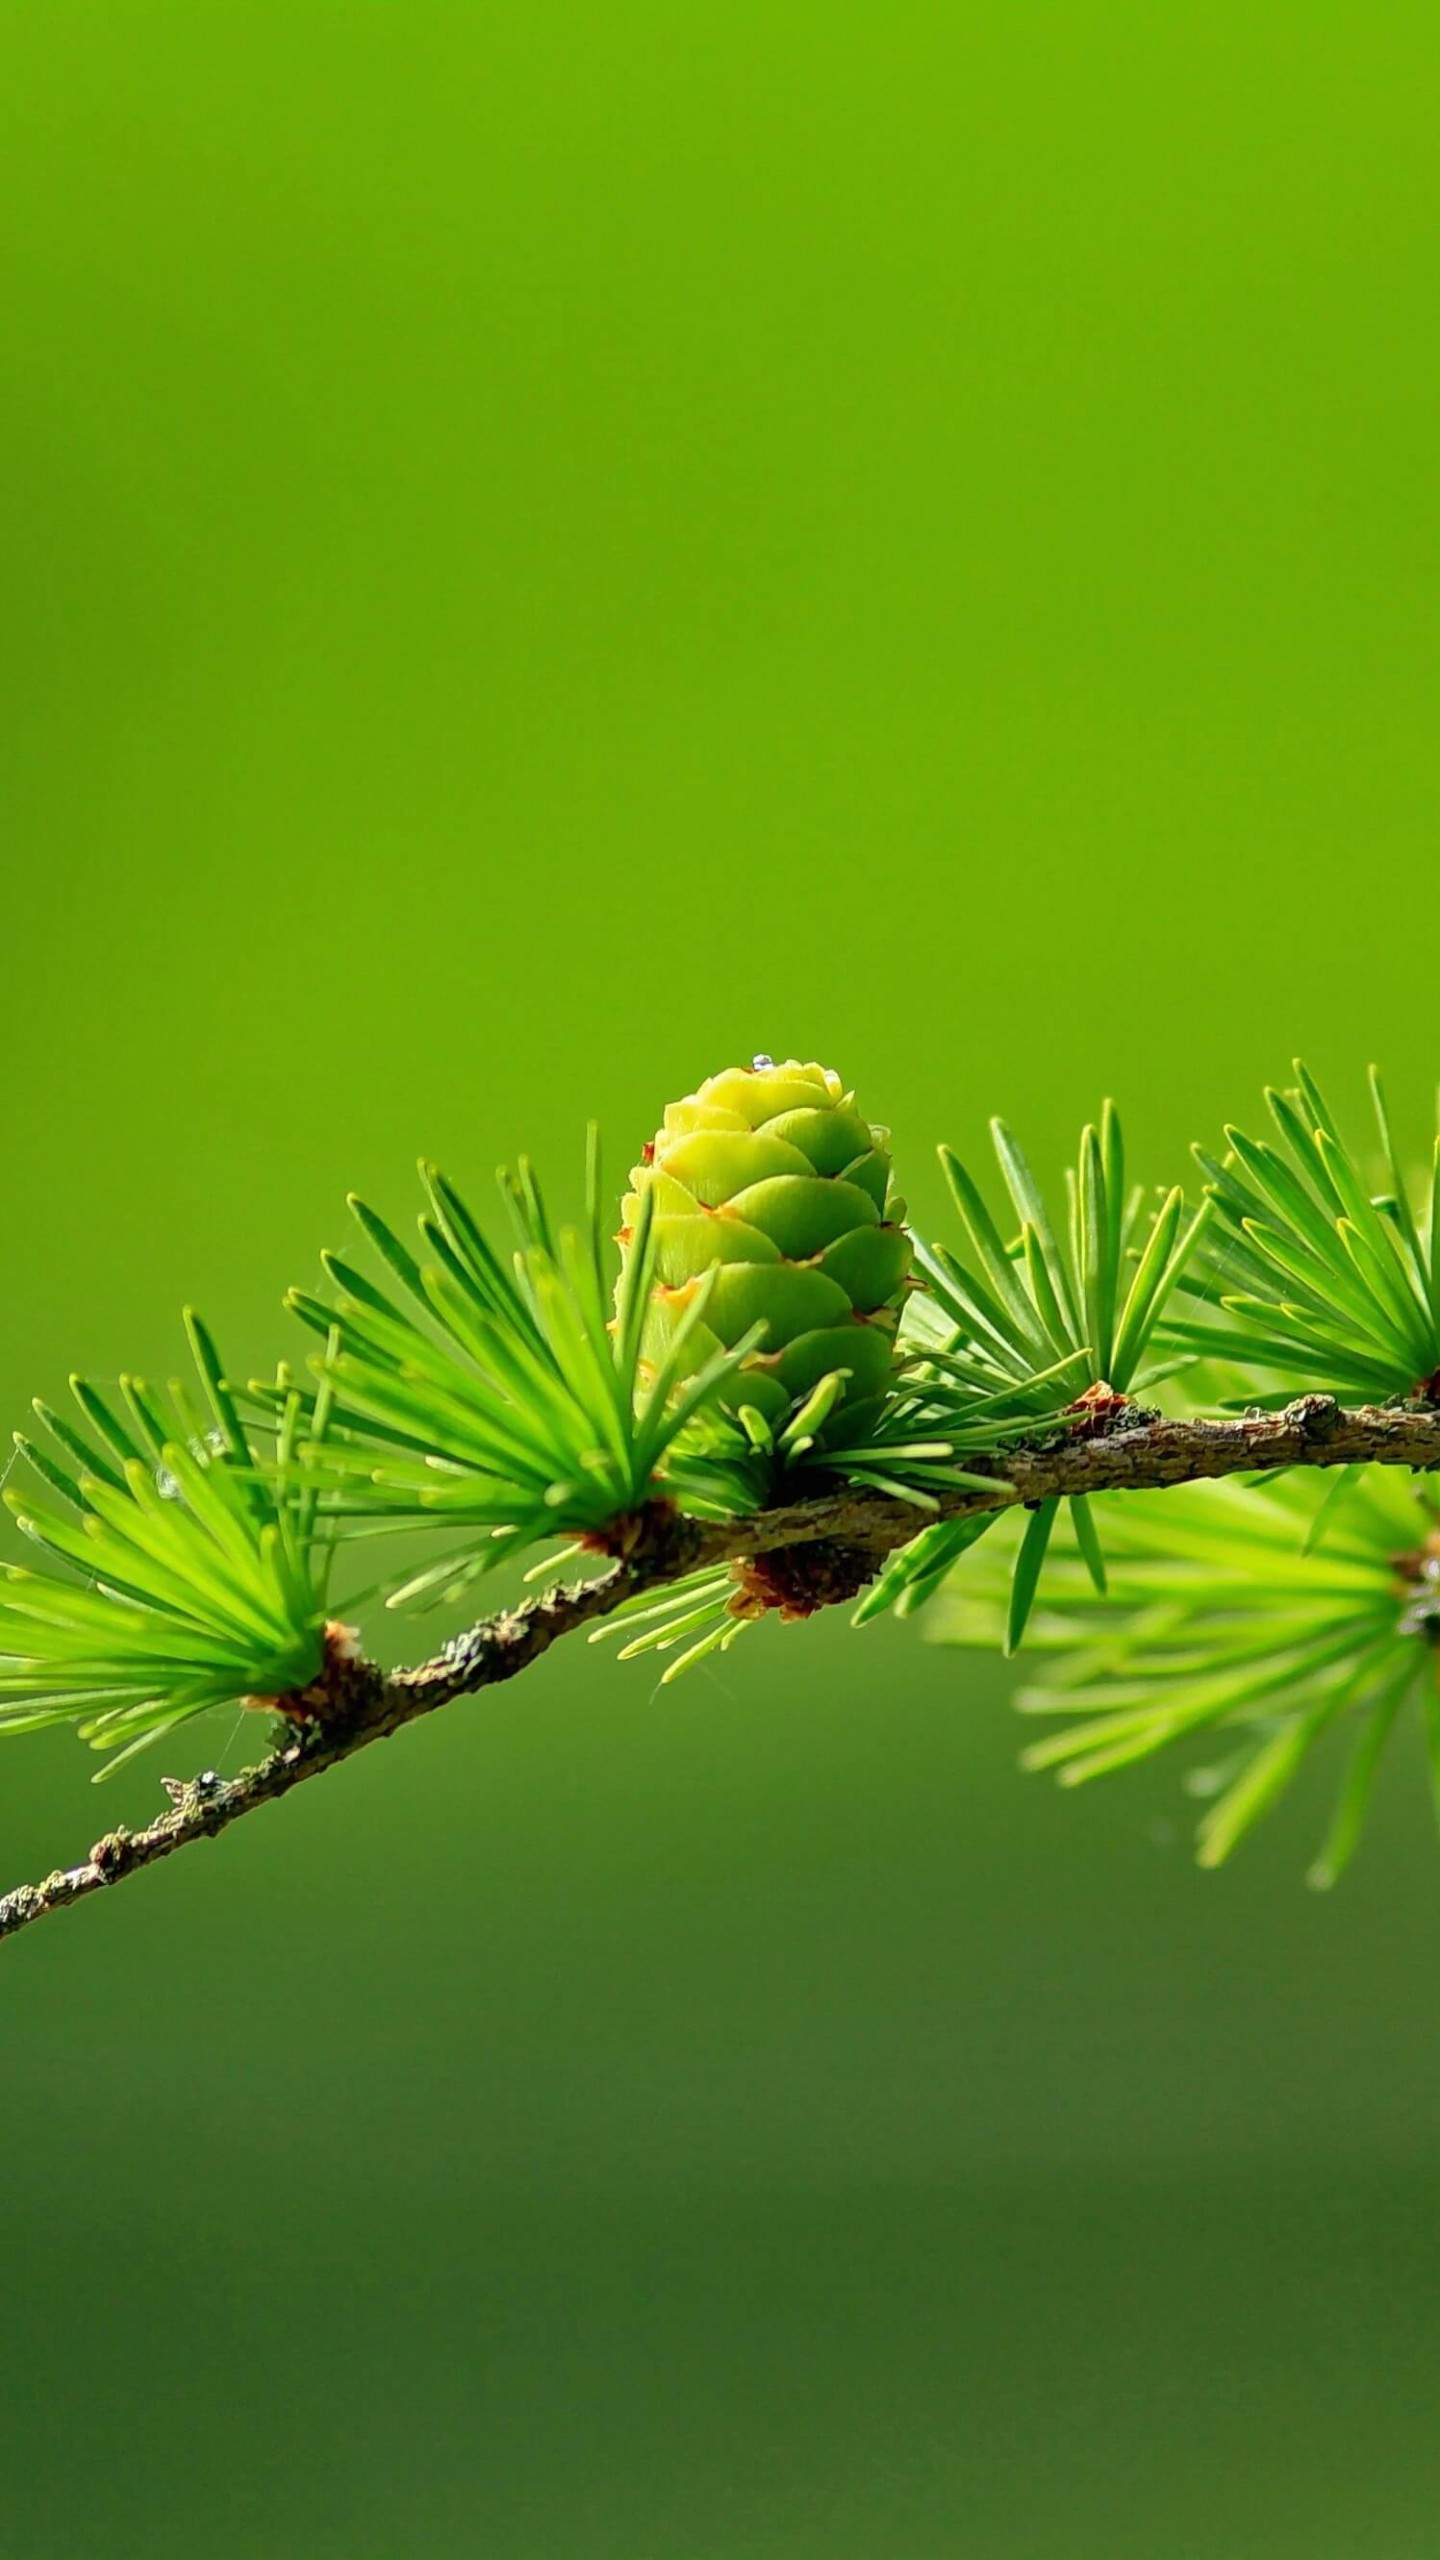 Branch of Pine Tree Wallpaper for SAMSUNG Galaxy S6